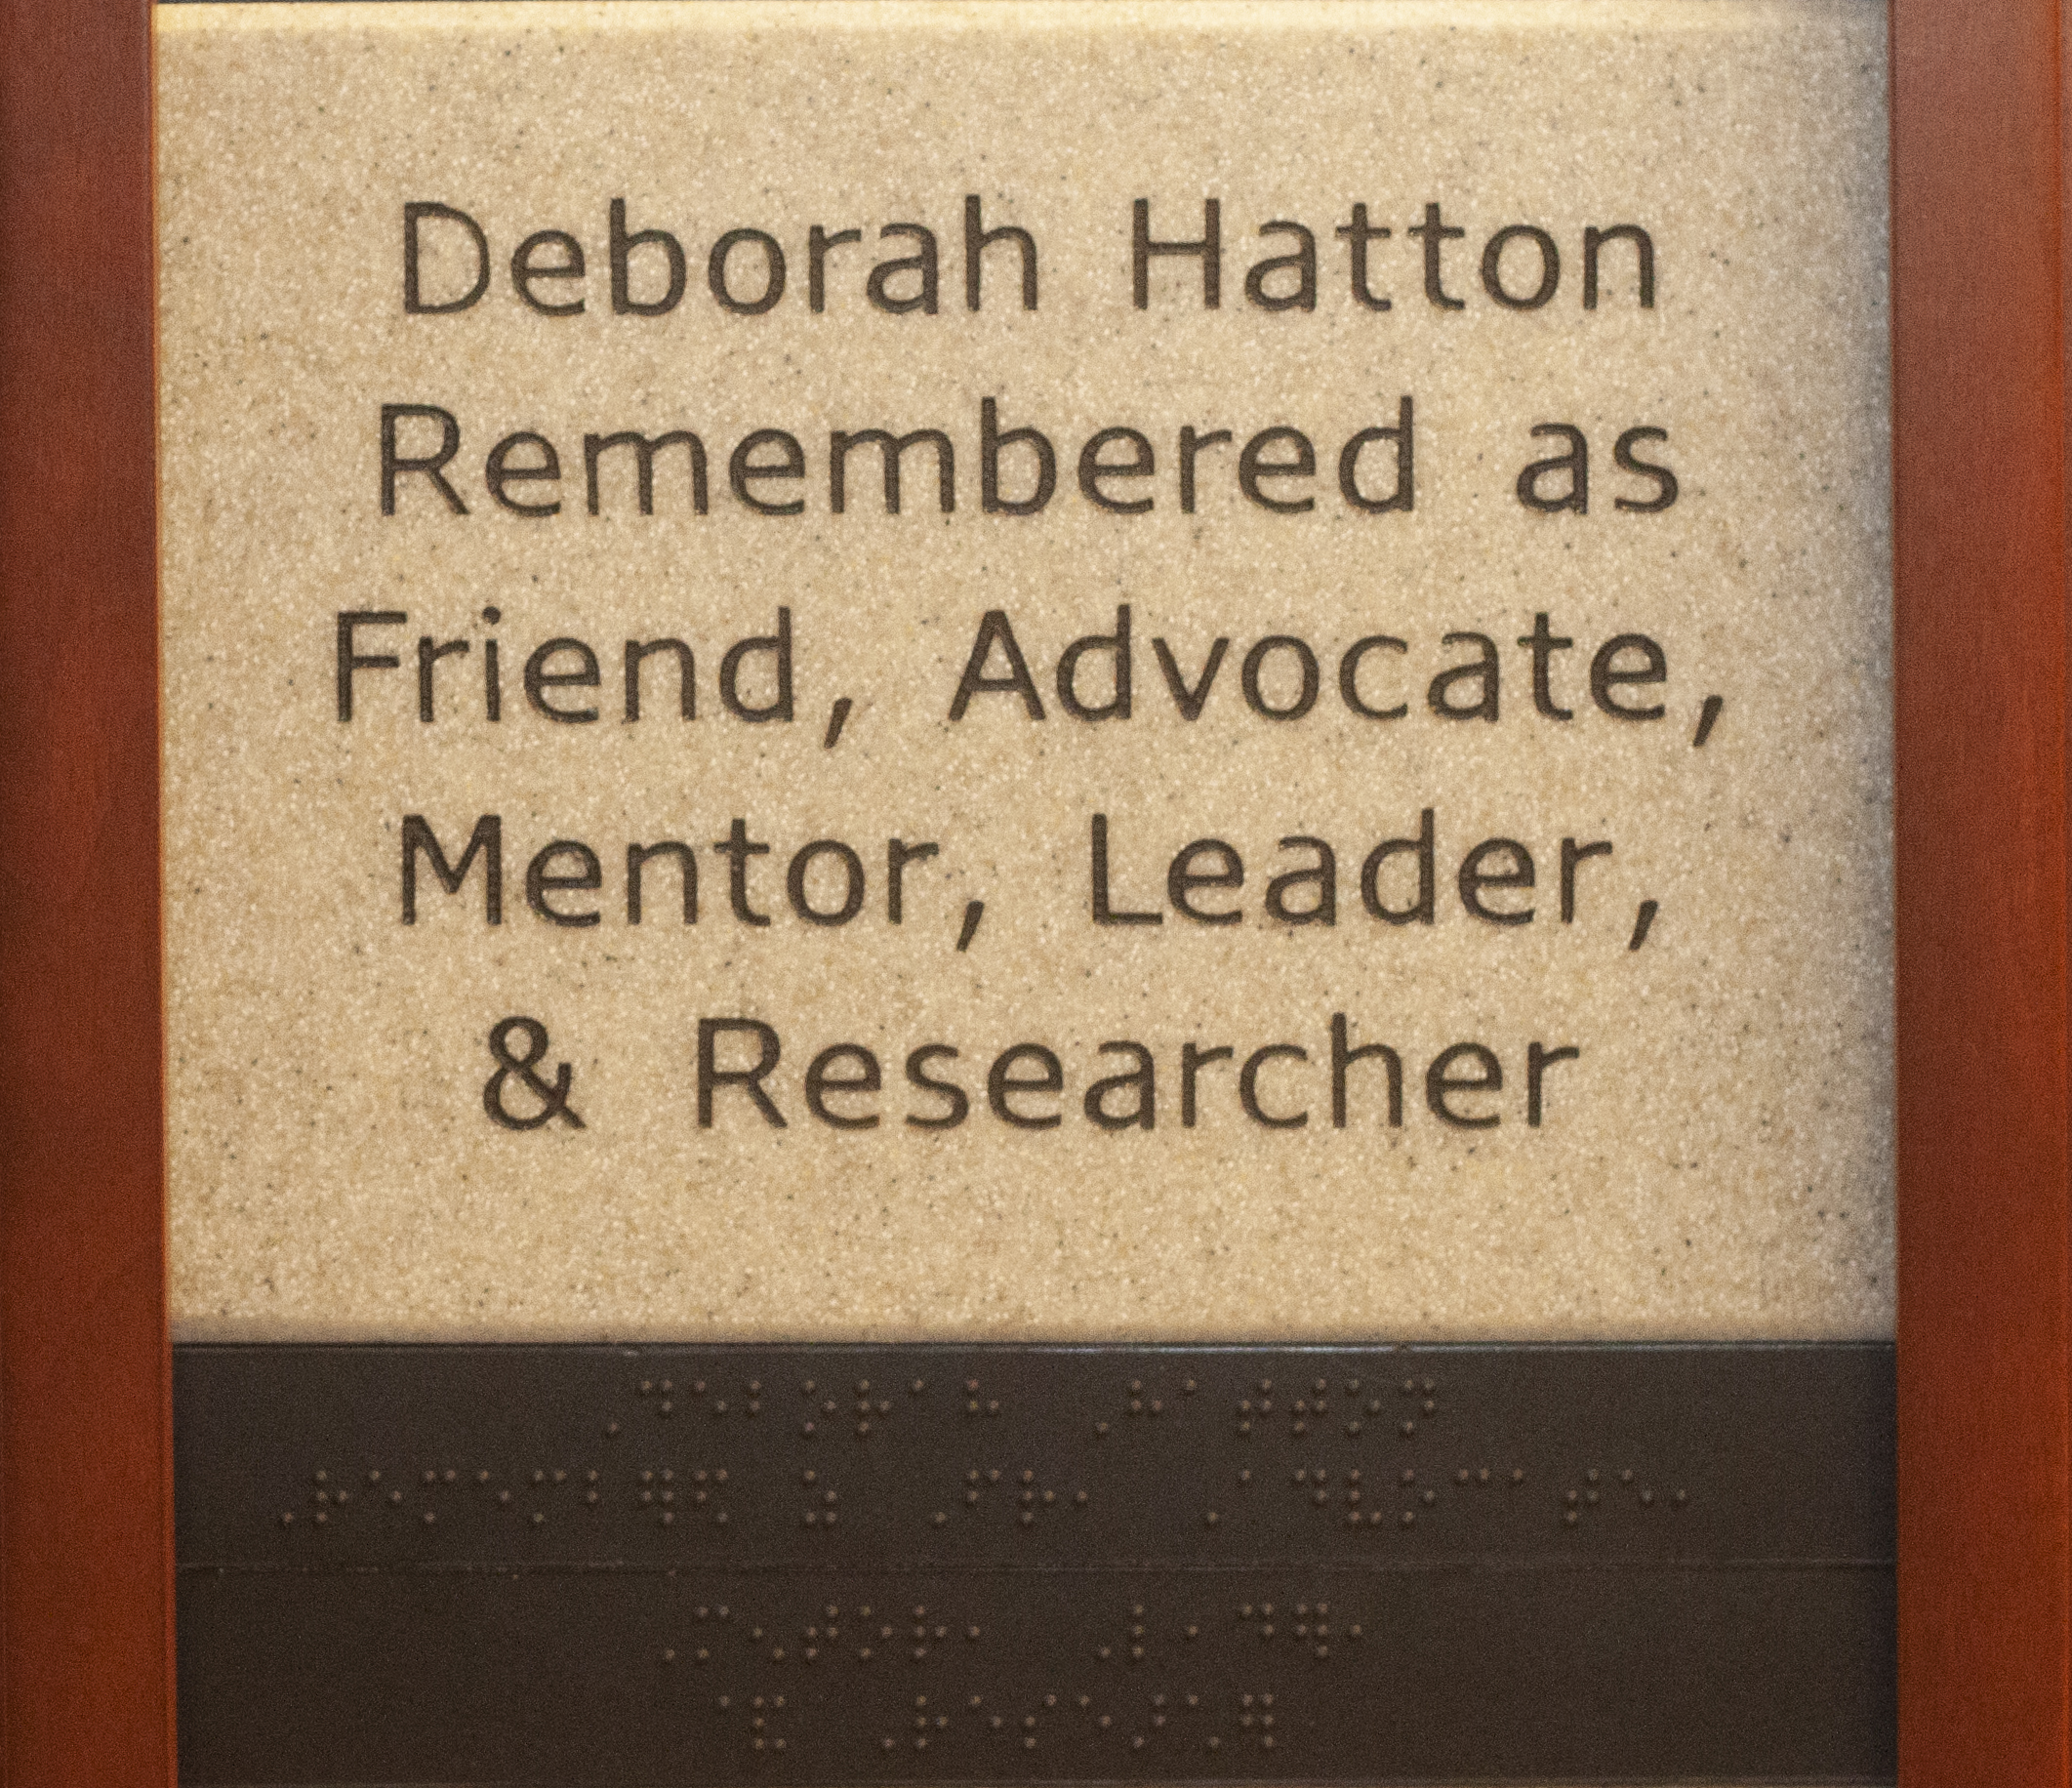 Deborah Hatton Remembered as Friend, Advocate, Mentor, Leader, & Researcher